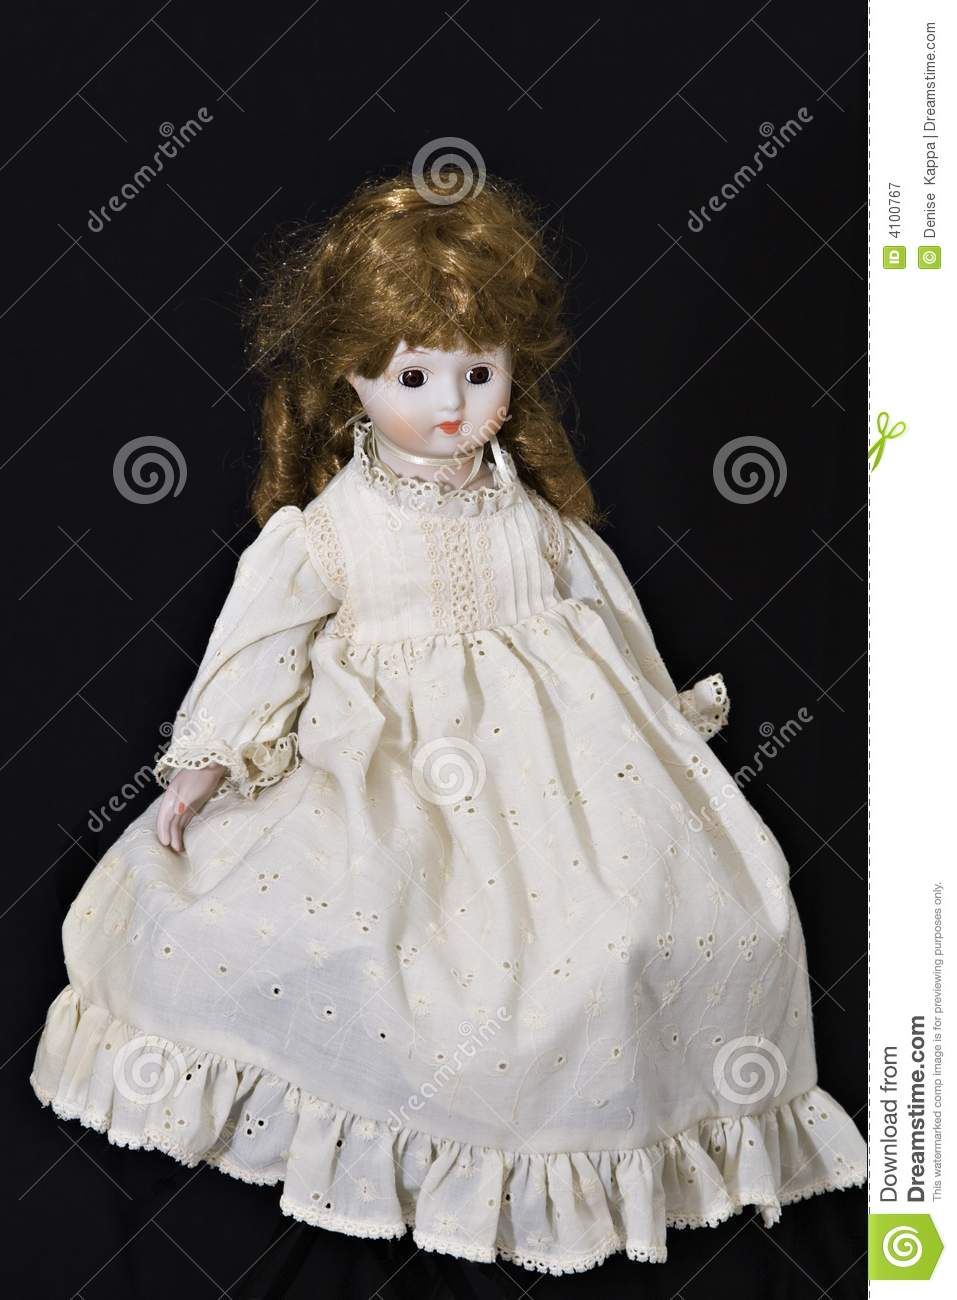 Old Porcelain Doll Royalty Free Stock Photography - Image